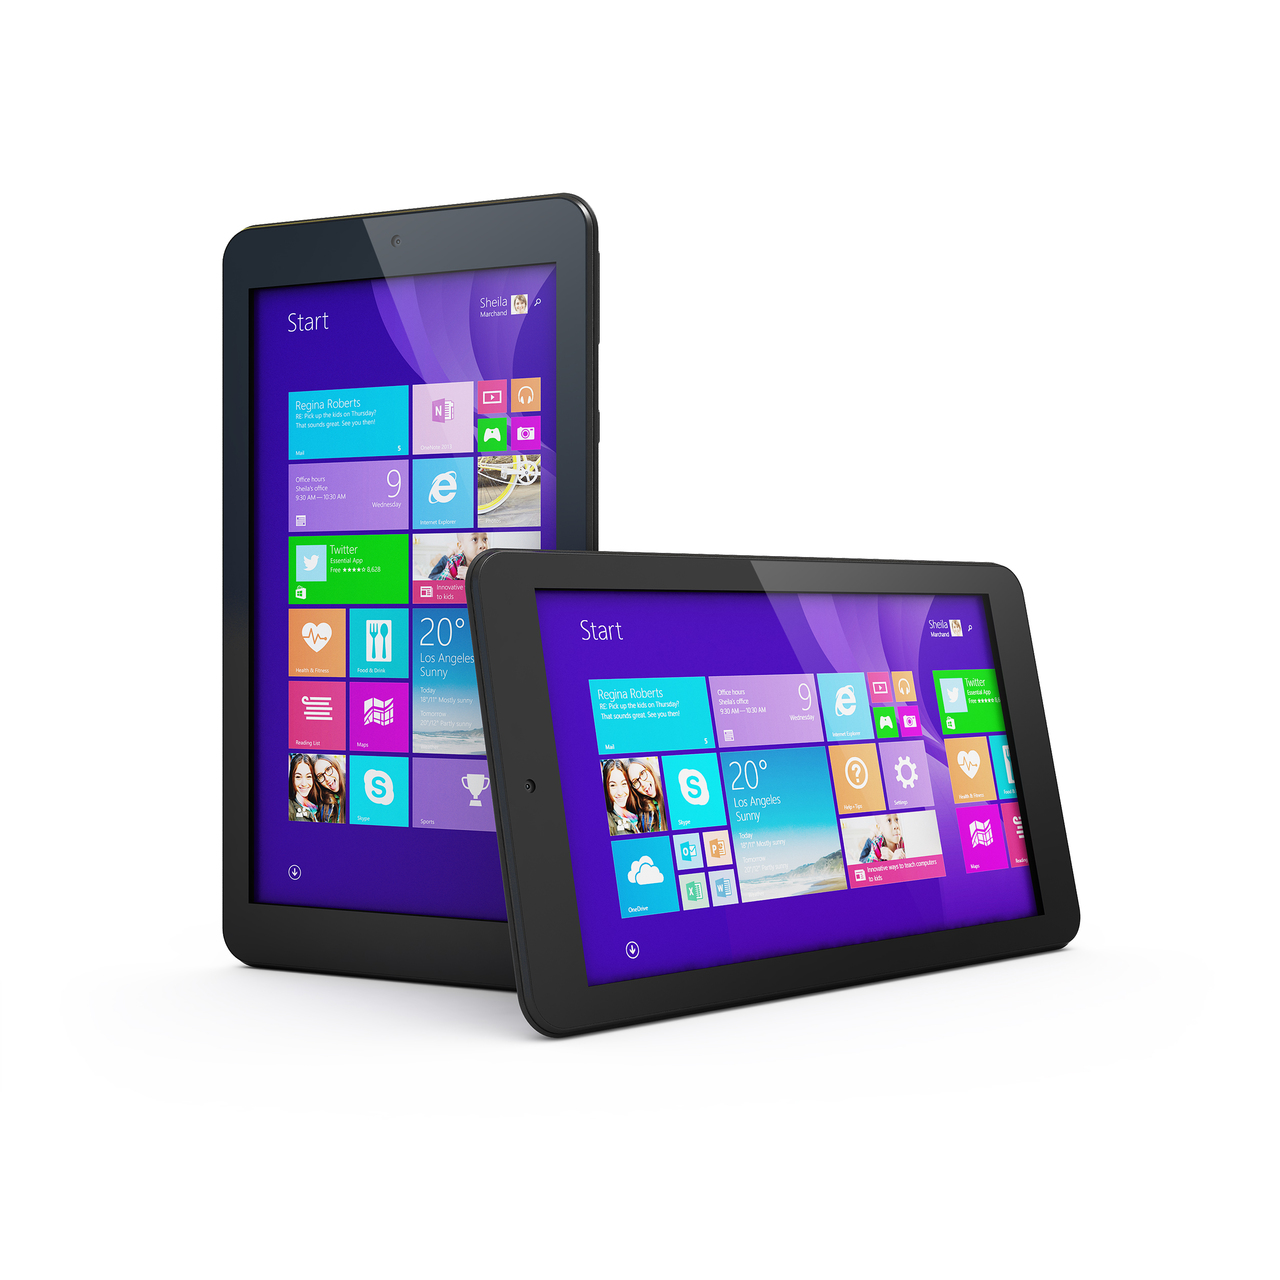 hipstreet w7 7 windows 8 1 intel quad core tablet 16gb bundle with stylus pen and reversible. Black Bedroom Furniture Sets. Home Design Ideas